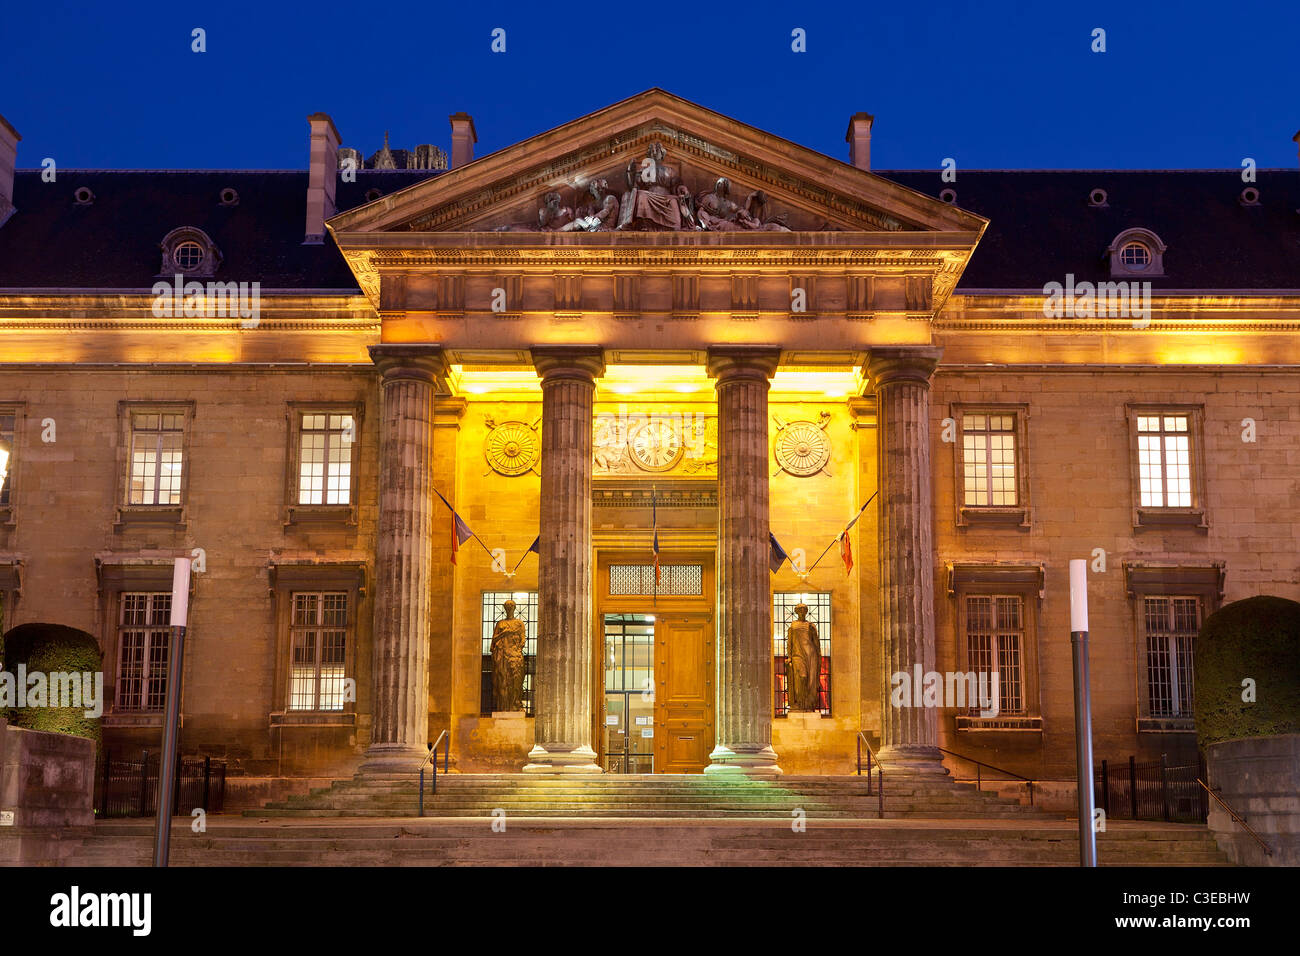 Europe, France, Marne (51), Courthouse at Night, Reims - Stock Image